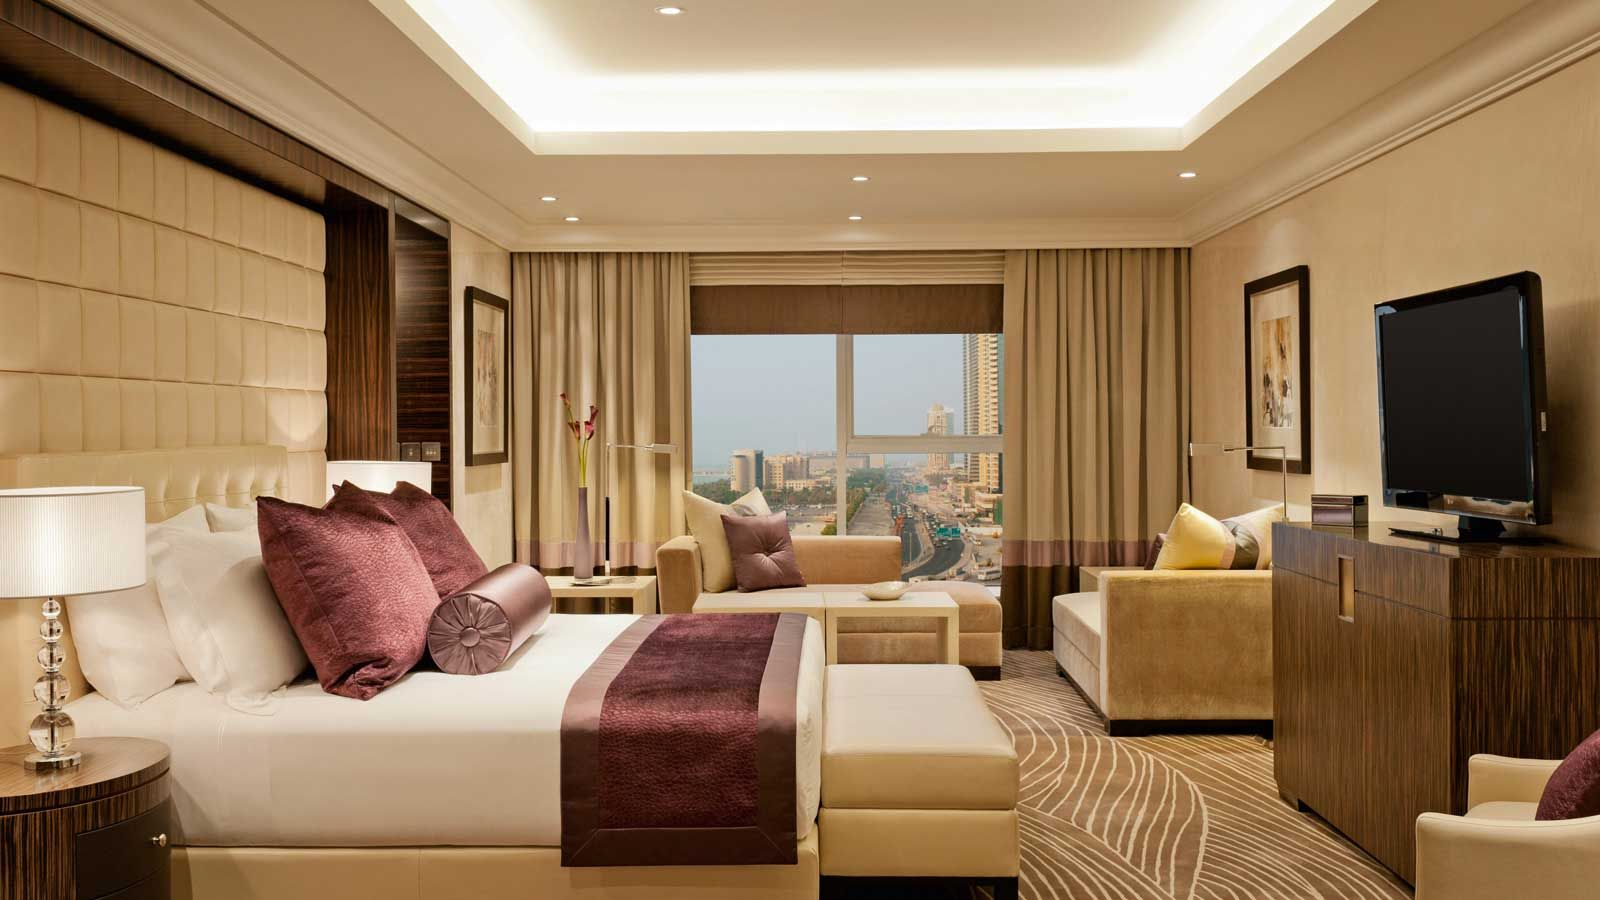 5 star master bedrooms  Pin by angela loggins on Dubai anyone  Pinterest  Dubai hotel